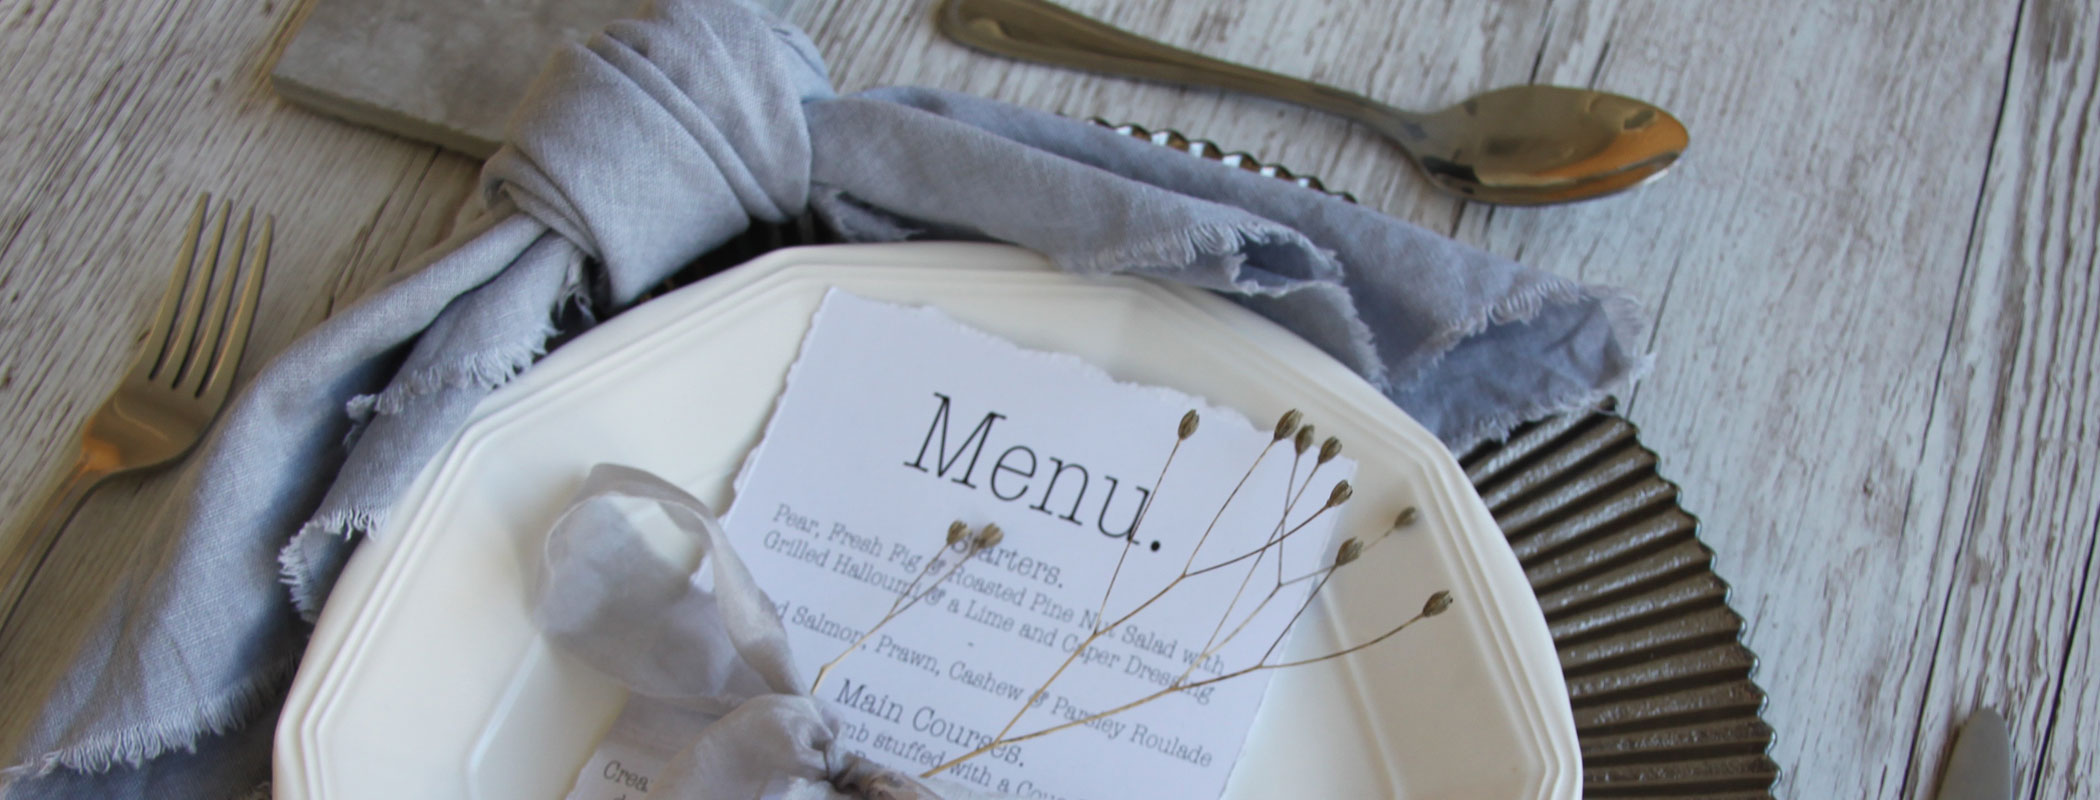 How To Fold A Curved Knotted Napkin Three Little Secrets